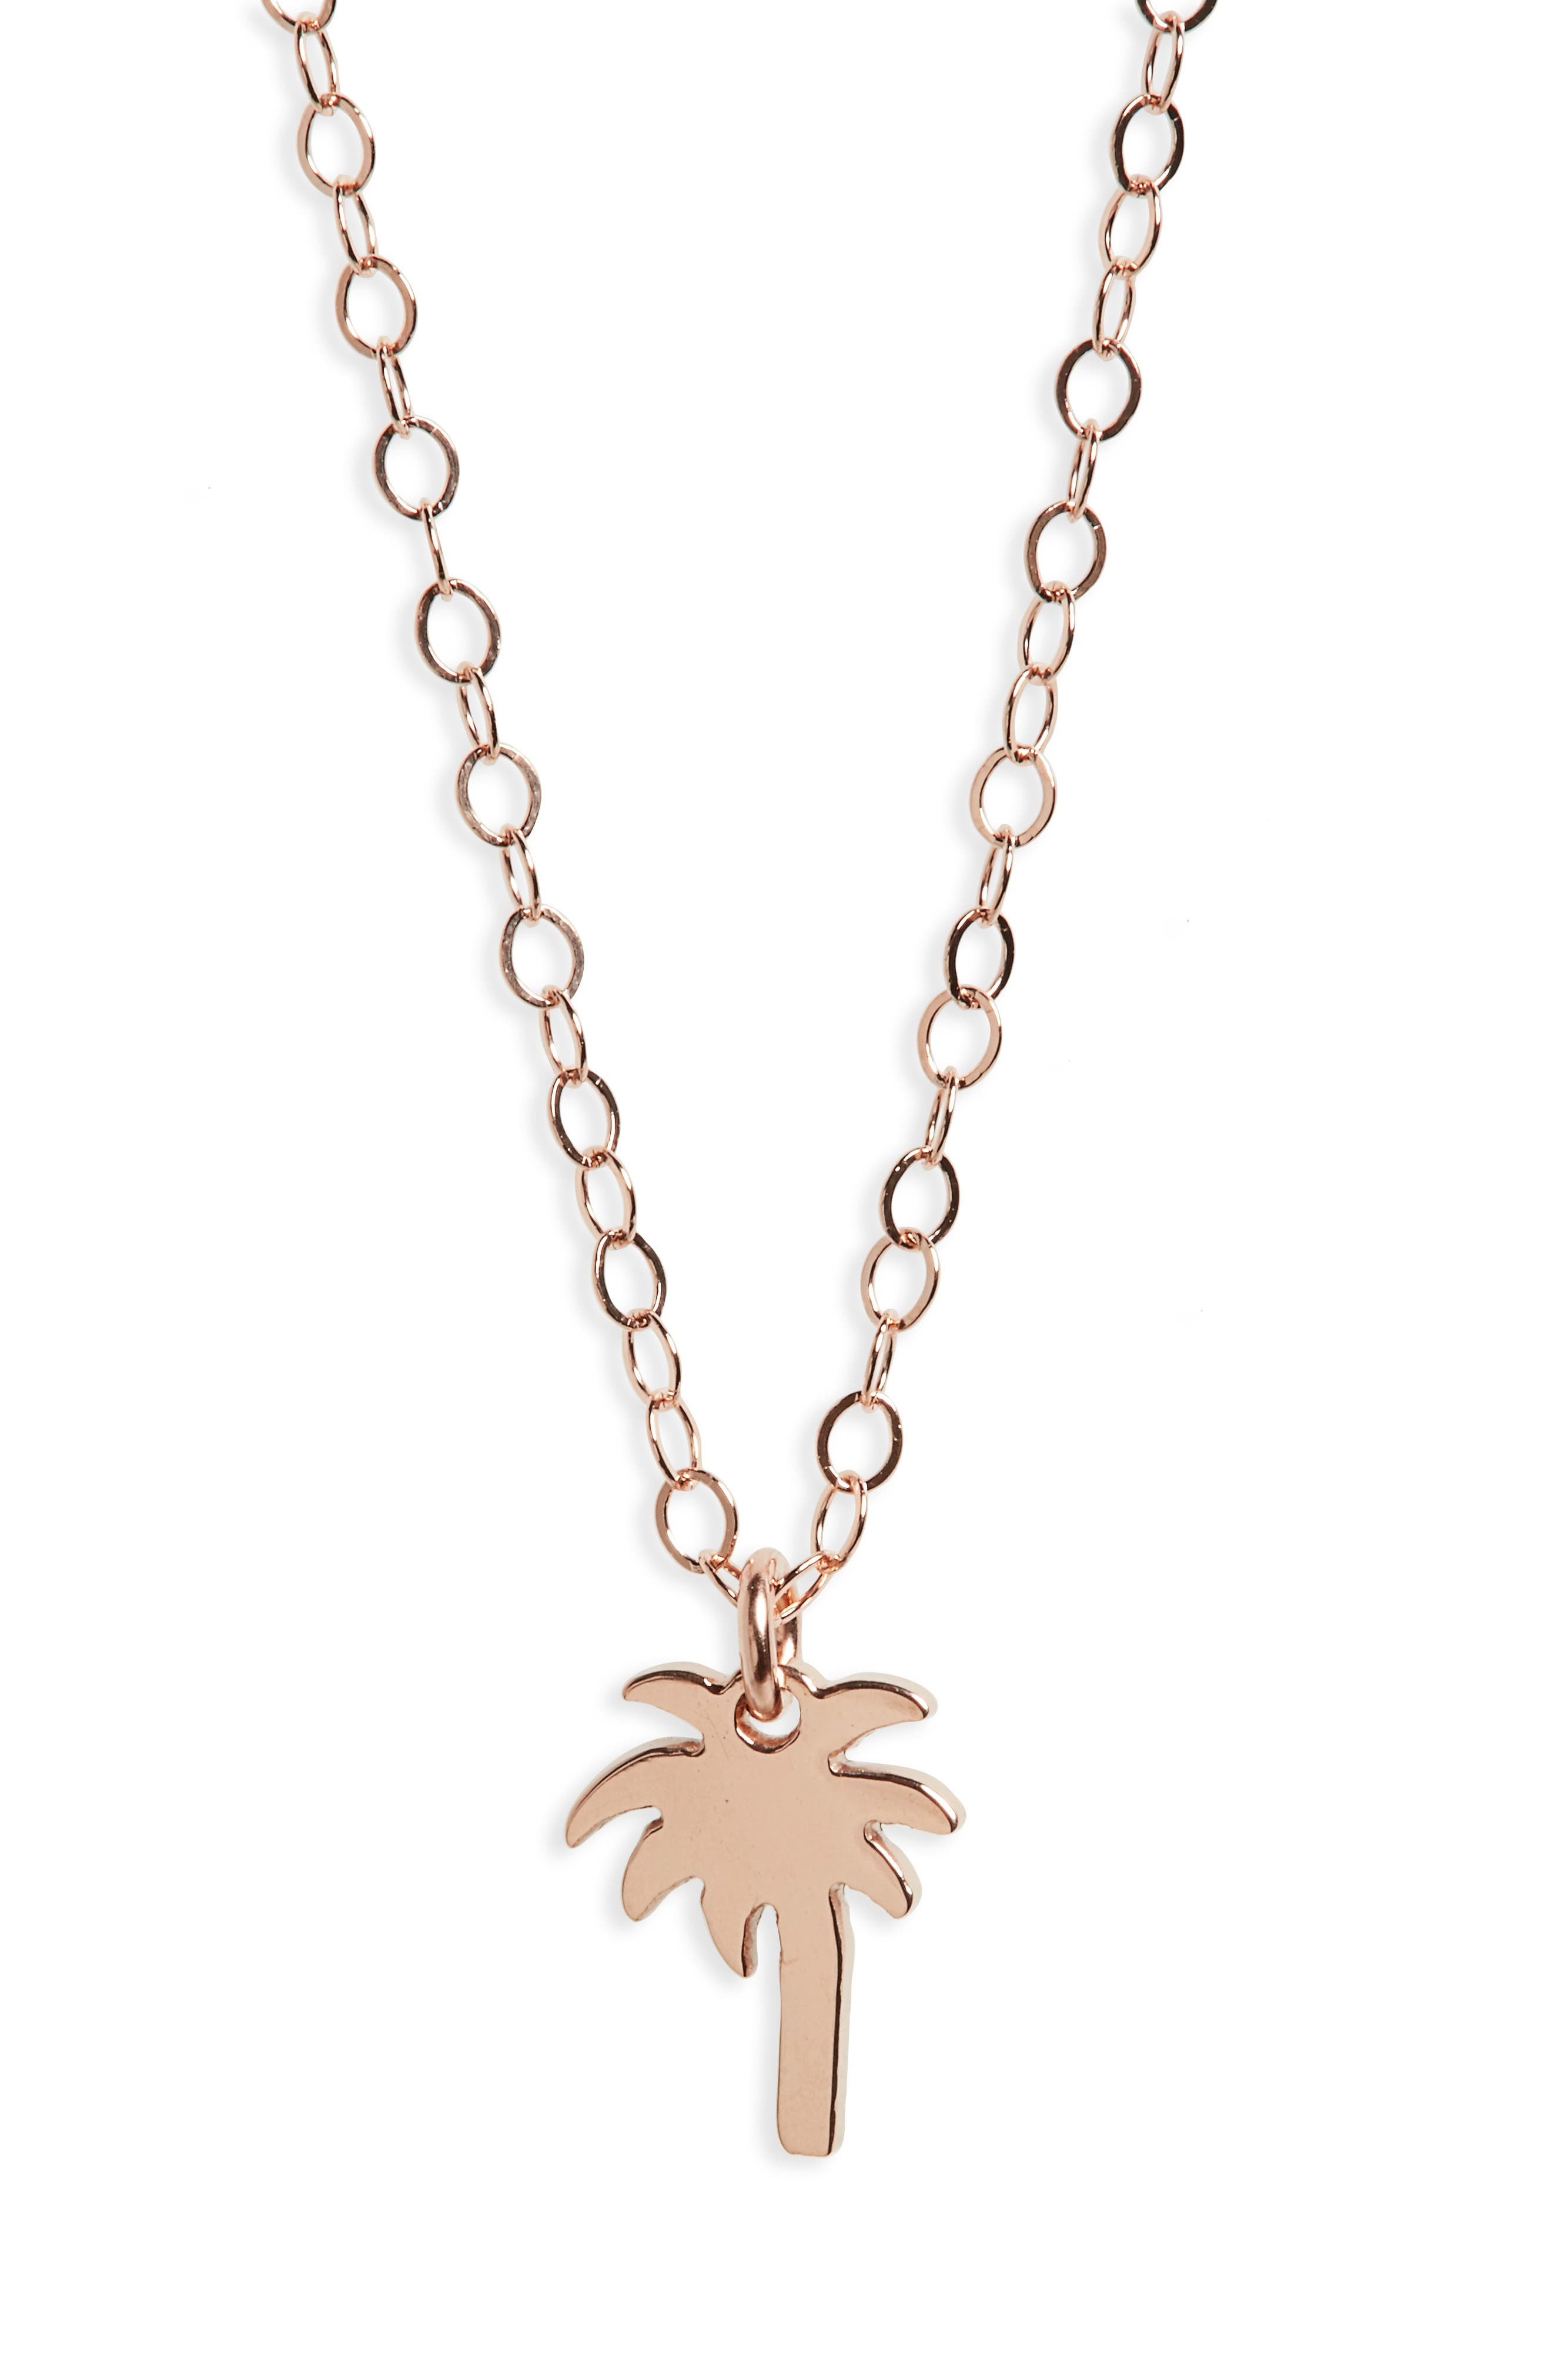 Seoul Little Maive Palm Tree Necklace